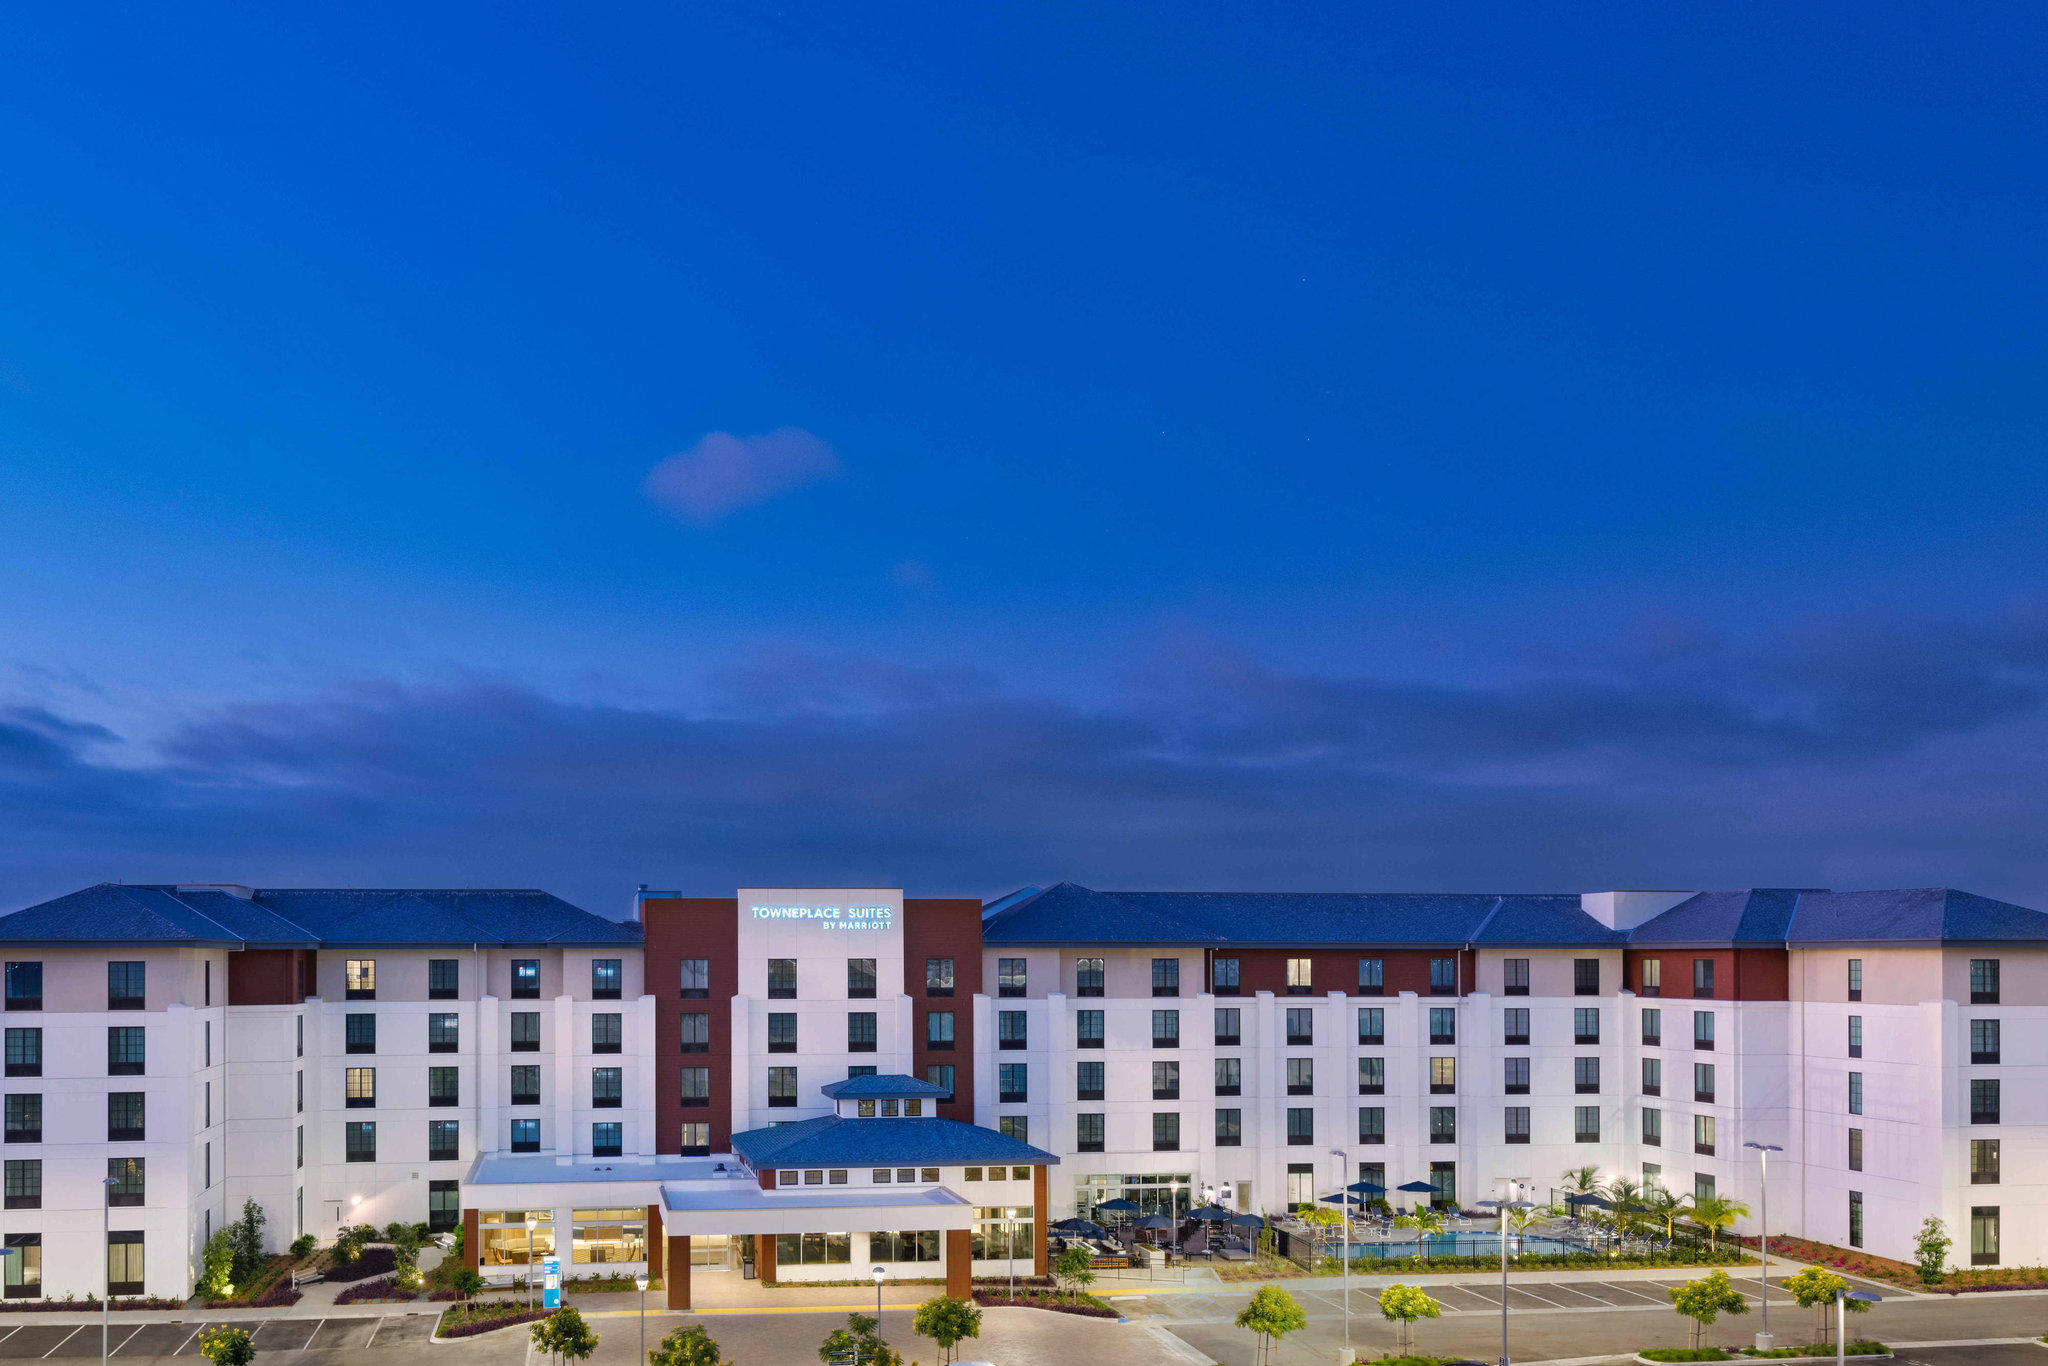 TownePlace Suites by Marriott San Diego Airport/Liberty Station